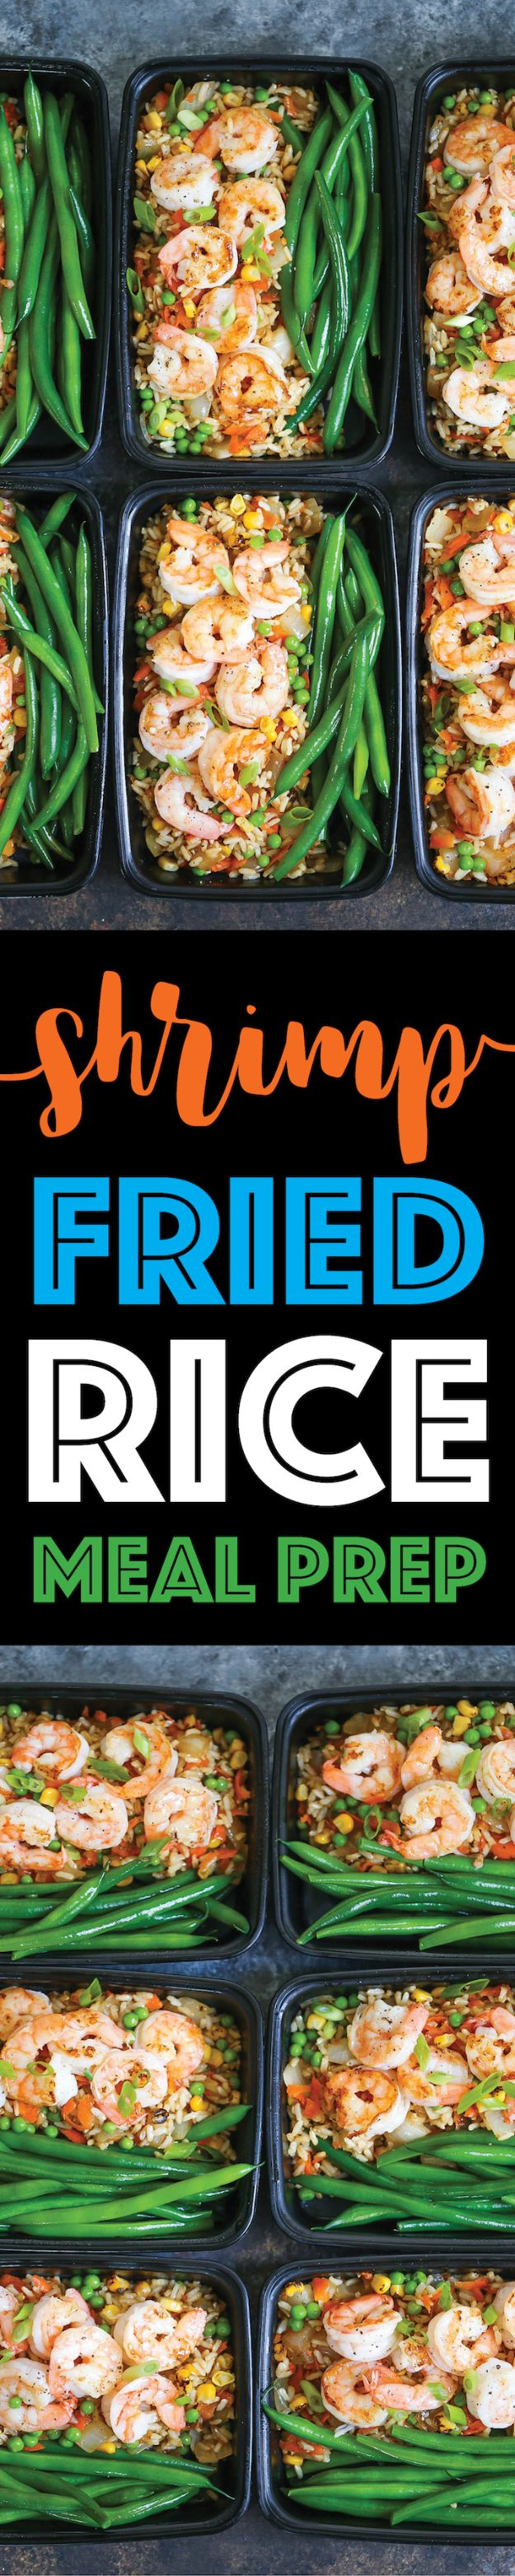 Meal Prep Ideas - Shrimp Fried Rice Meal Prep - Recipes and Planning Tips for Making a Week of Meals - Easy, Healthy Recipe Ideas to Make Ahead - Weeknight Dinners Lunches  #mealprep #dinnerideas